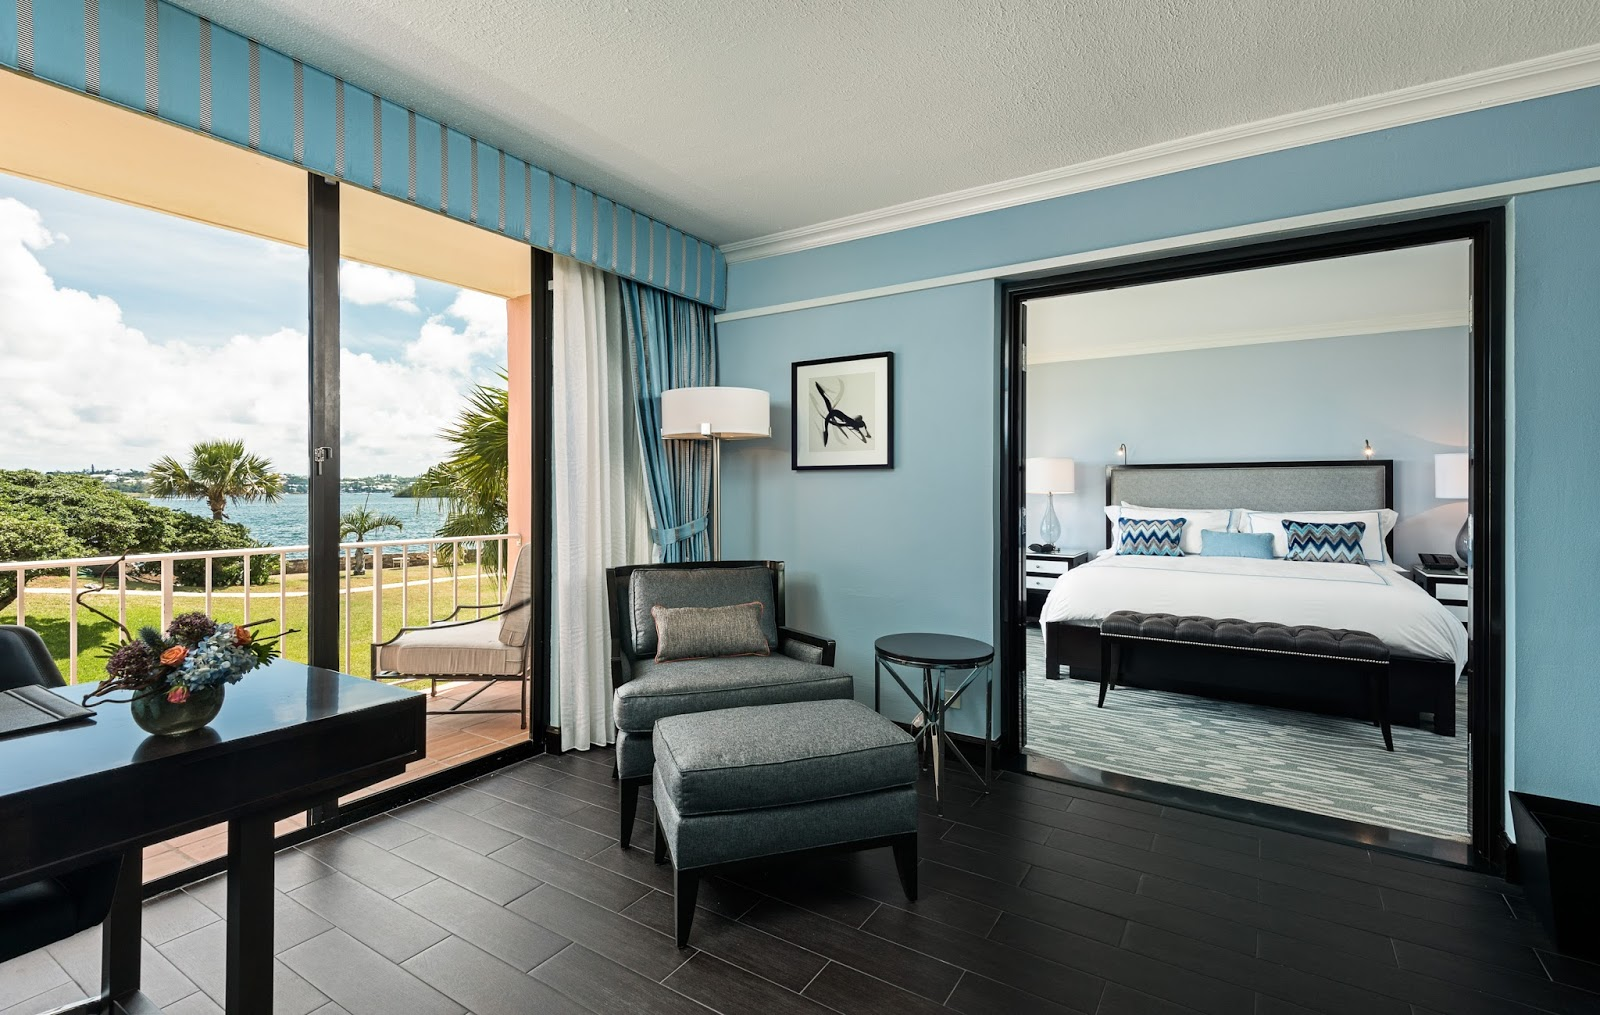 The newly renovated hamilton princess beach club a fairmont managed hotel travelista73 - Exciting beach bedroom themes for truly refreshing atmosphere ...